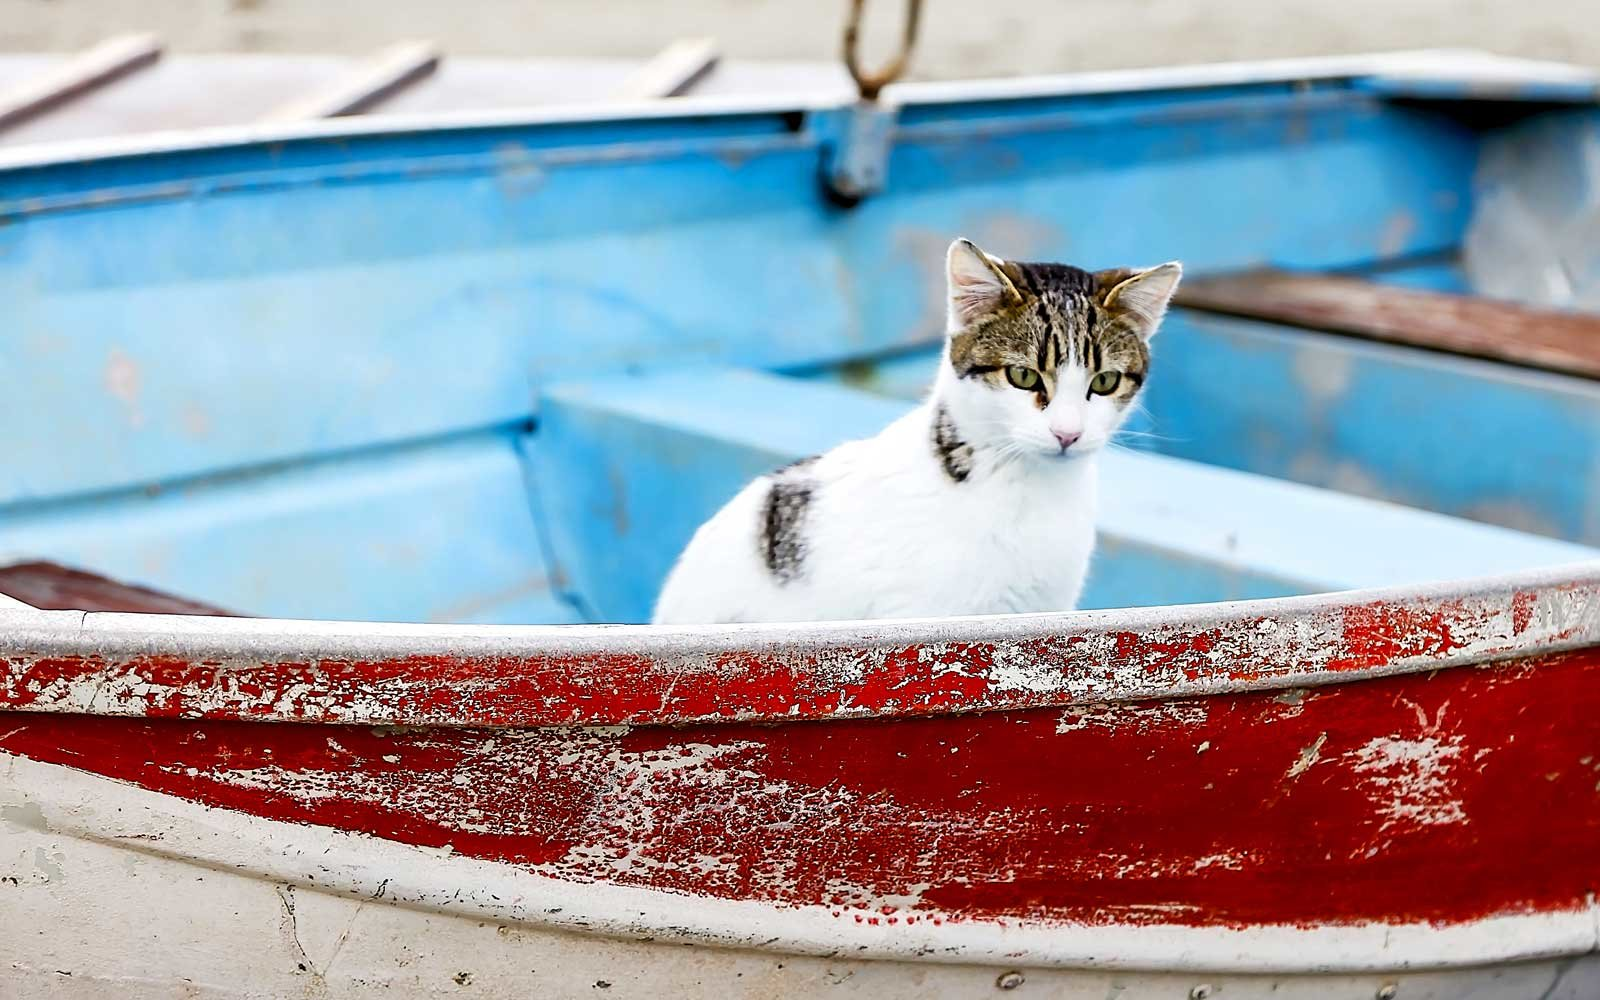 Greek cat sanctuary hiring caretaker to live on island, supervise 55 cats